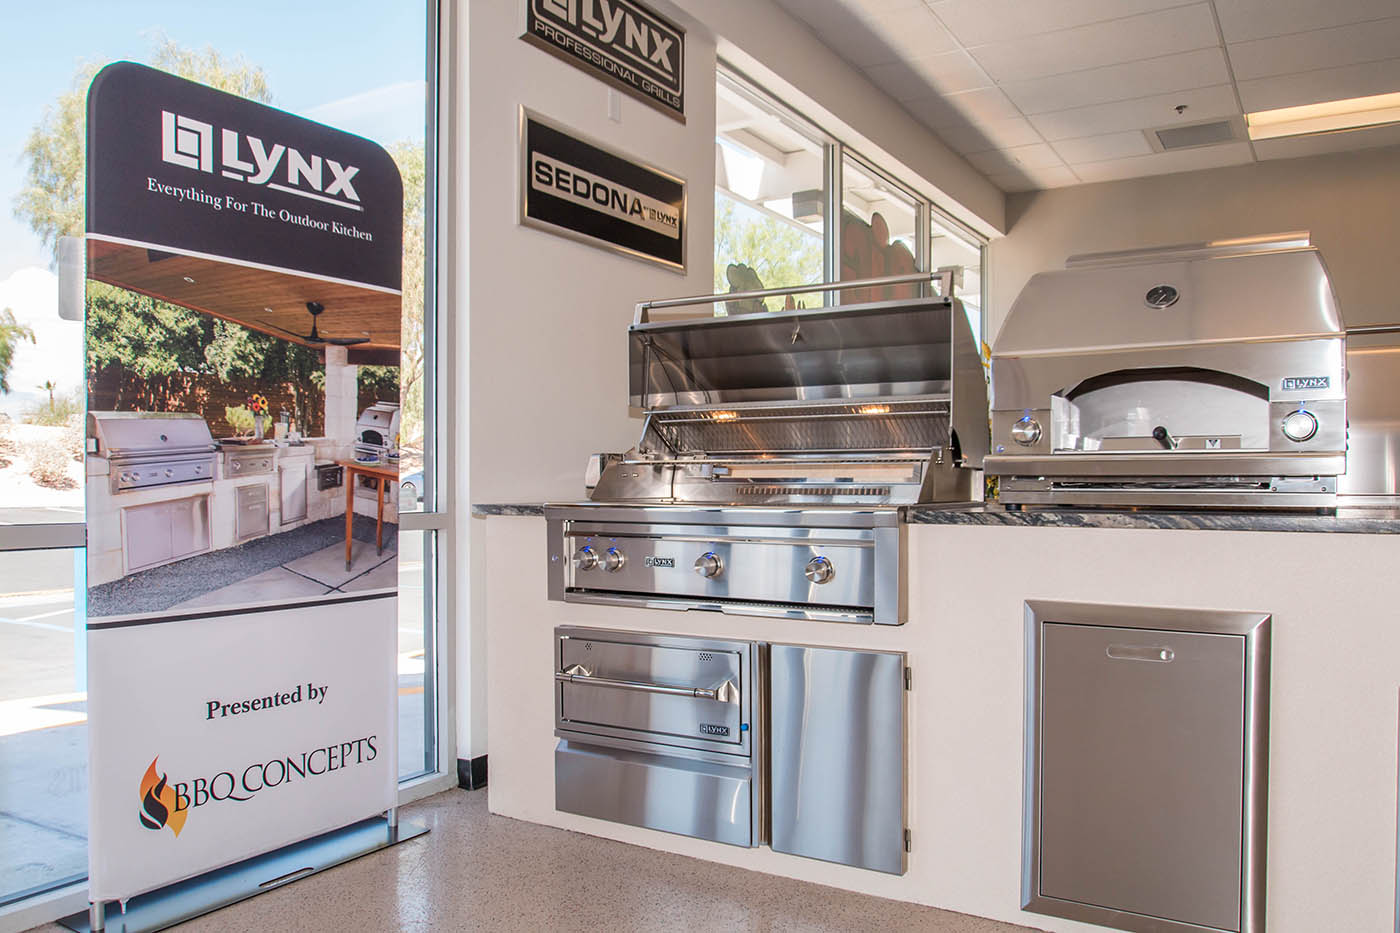 Custom Lynx Professional Outdoor Kitchen Components By Bbq Concepts Of Las Vegas Nevada